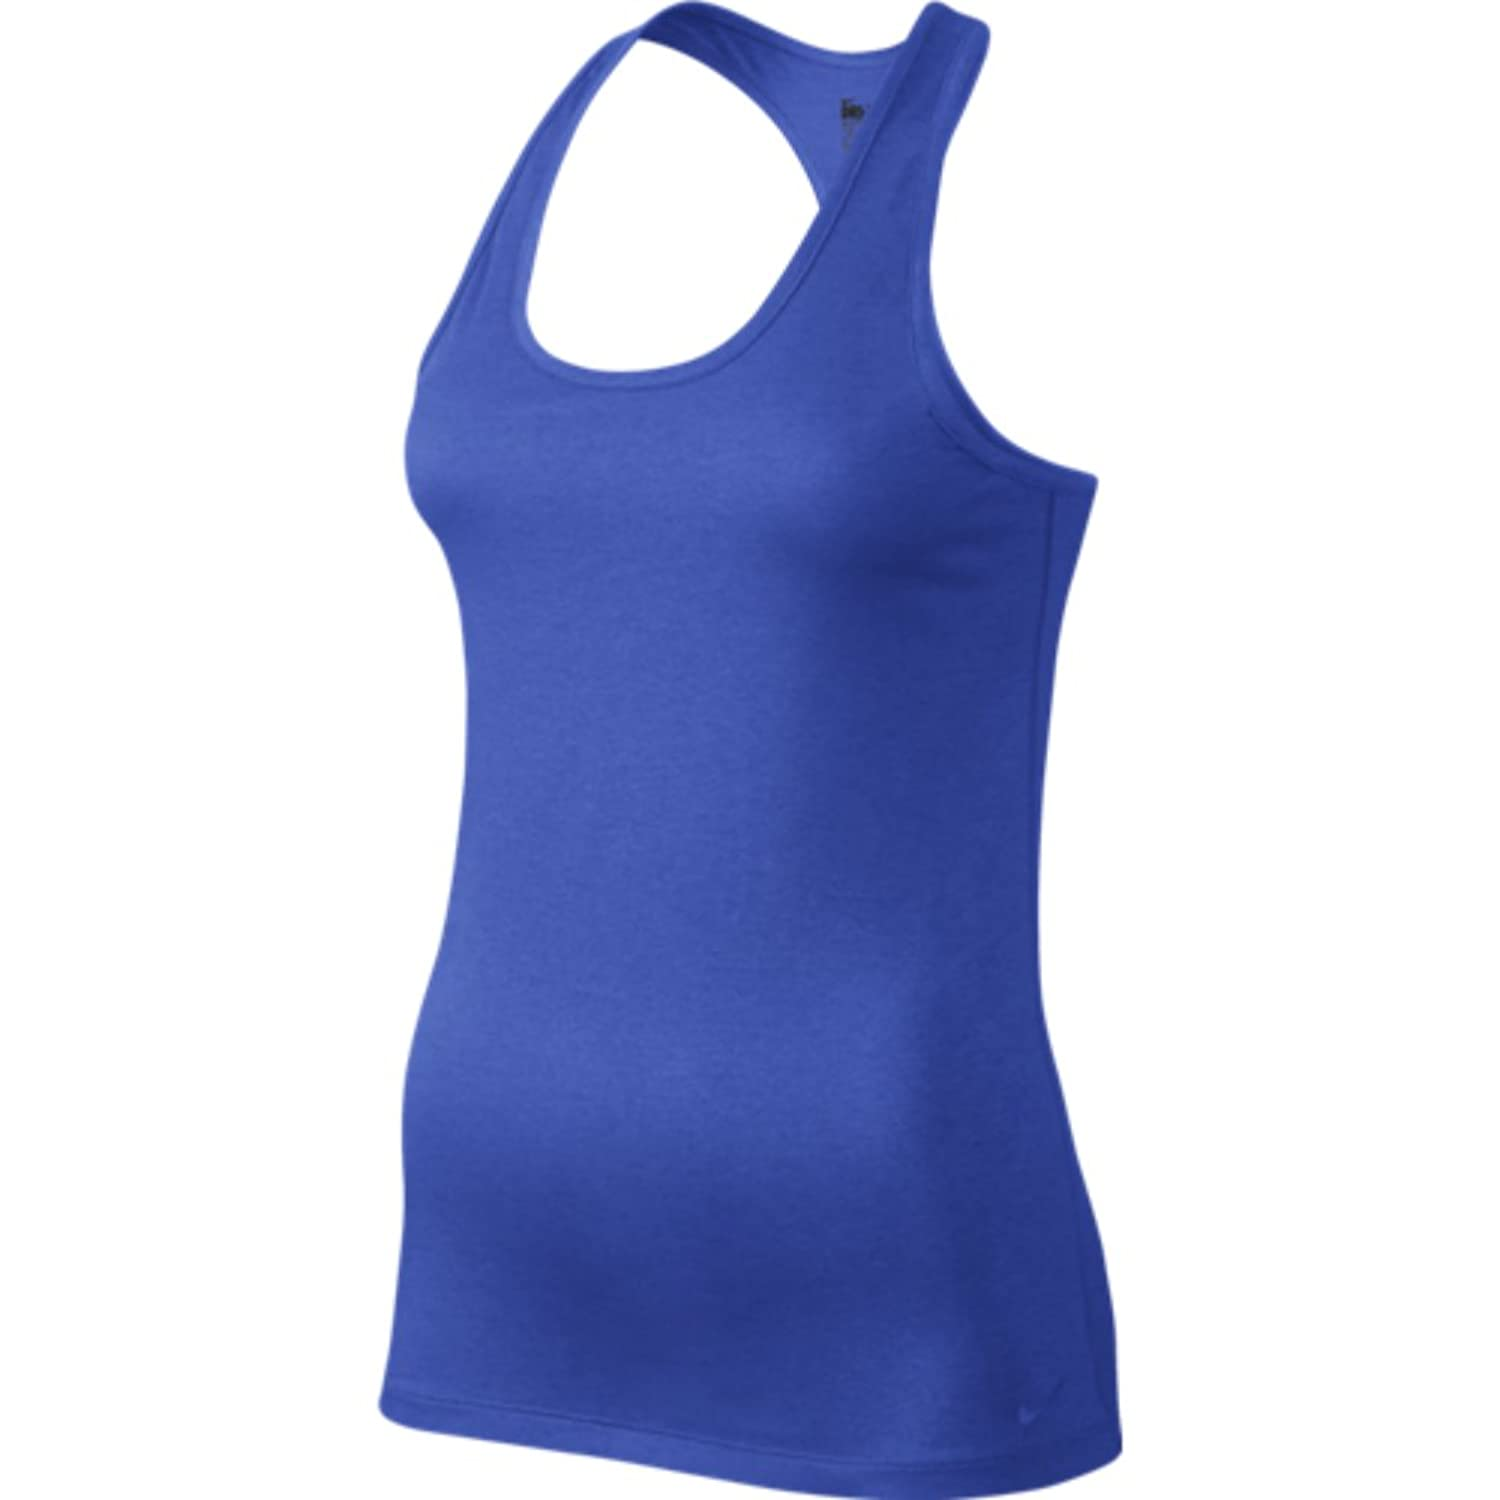 Nike Womens Dri-Fit Racerback Tank Top